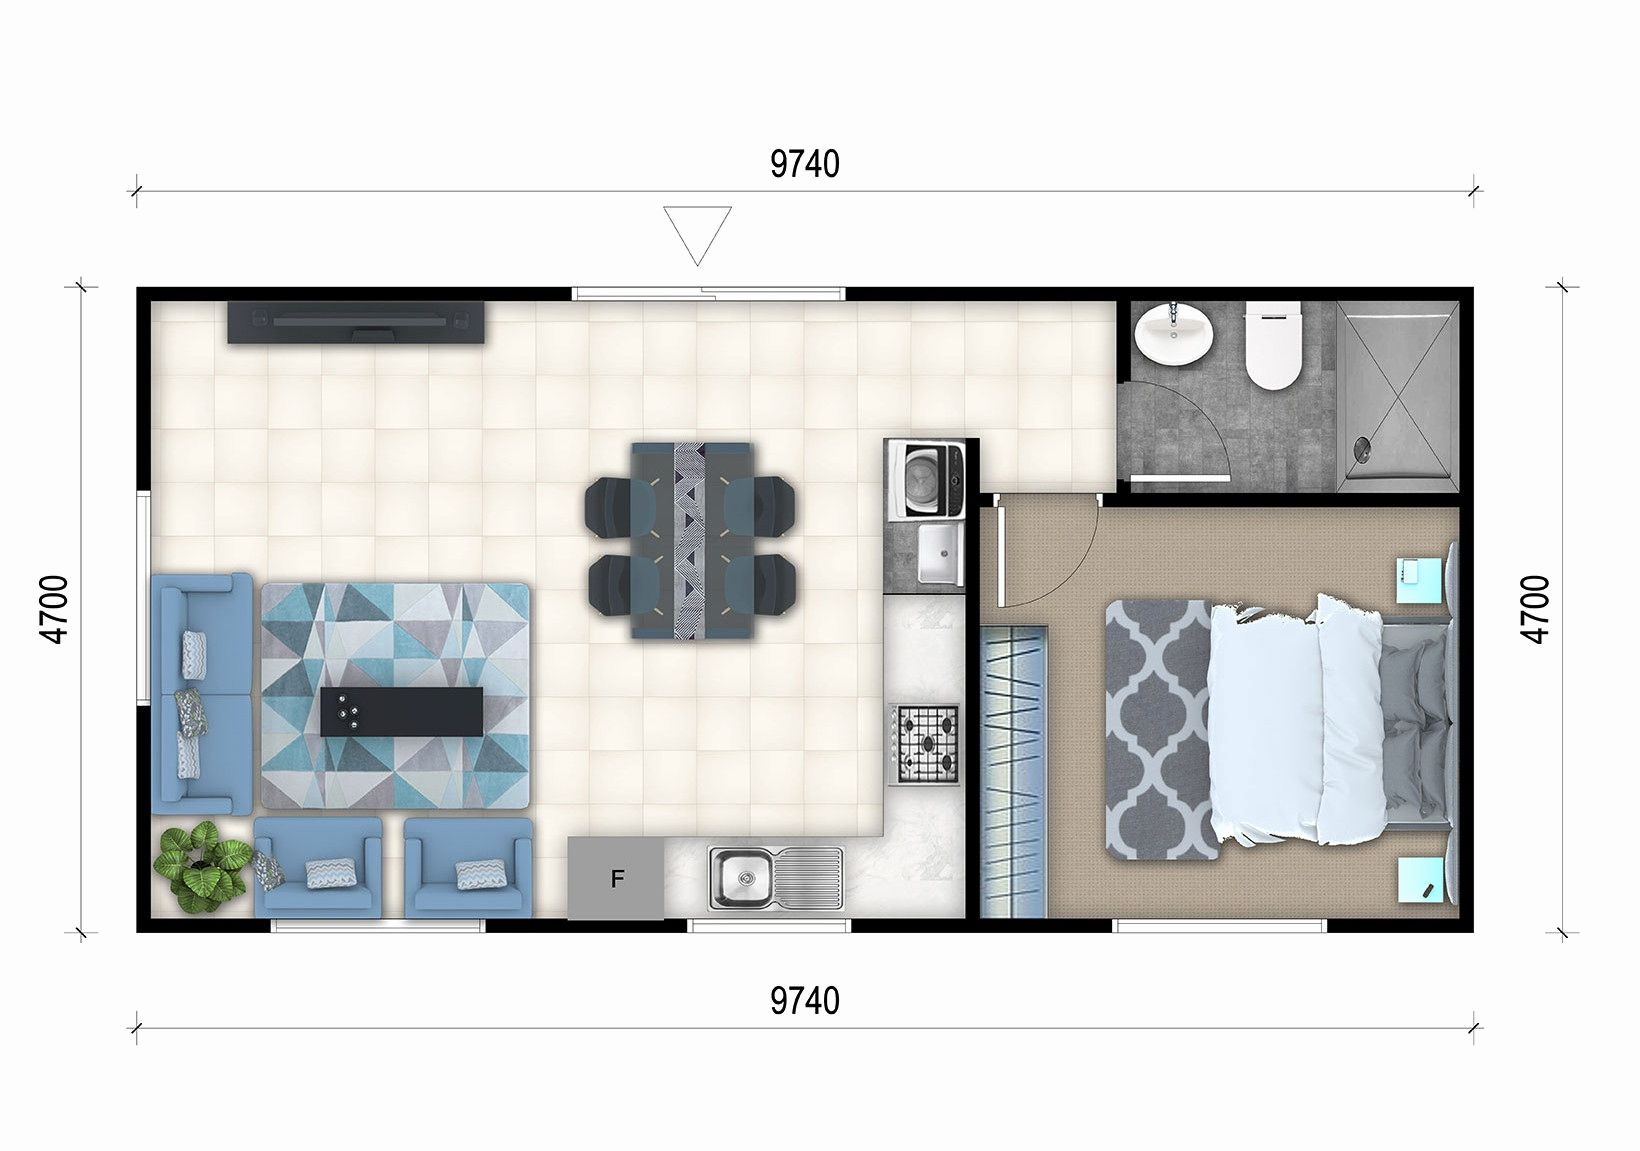 Luxury master bedroom floor plans   Bedroom House Plans with Granny Flat Luxury Granny Flat Floor